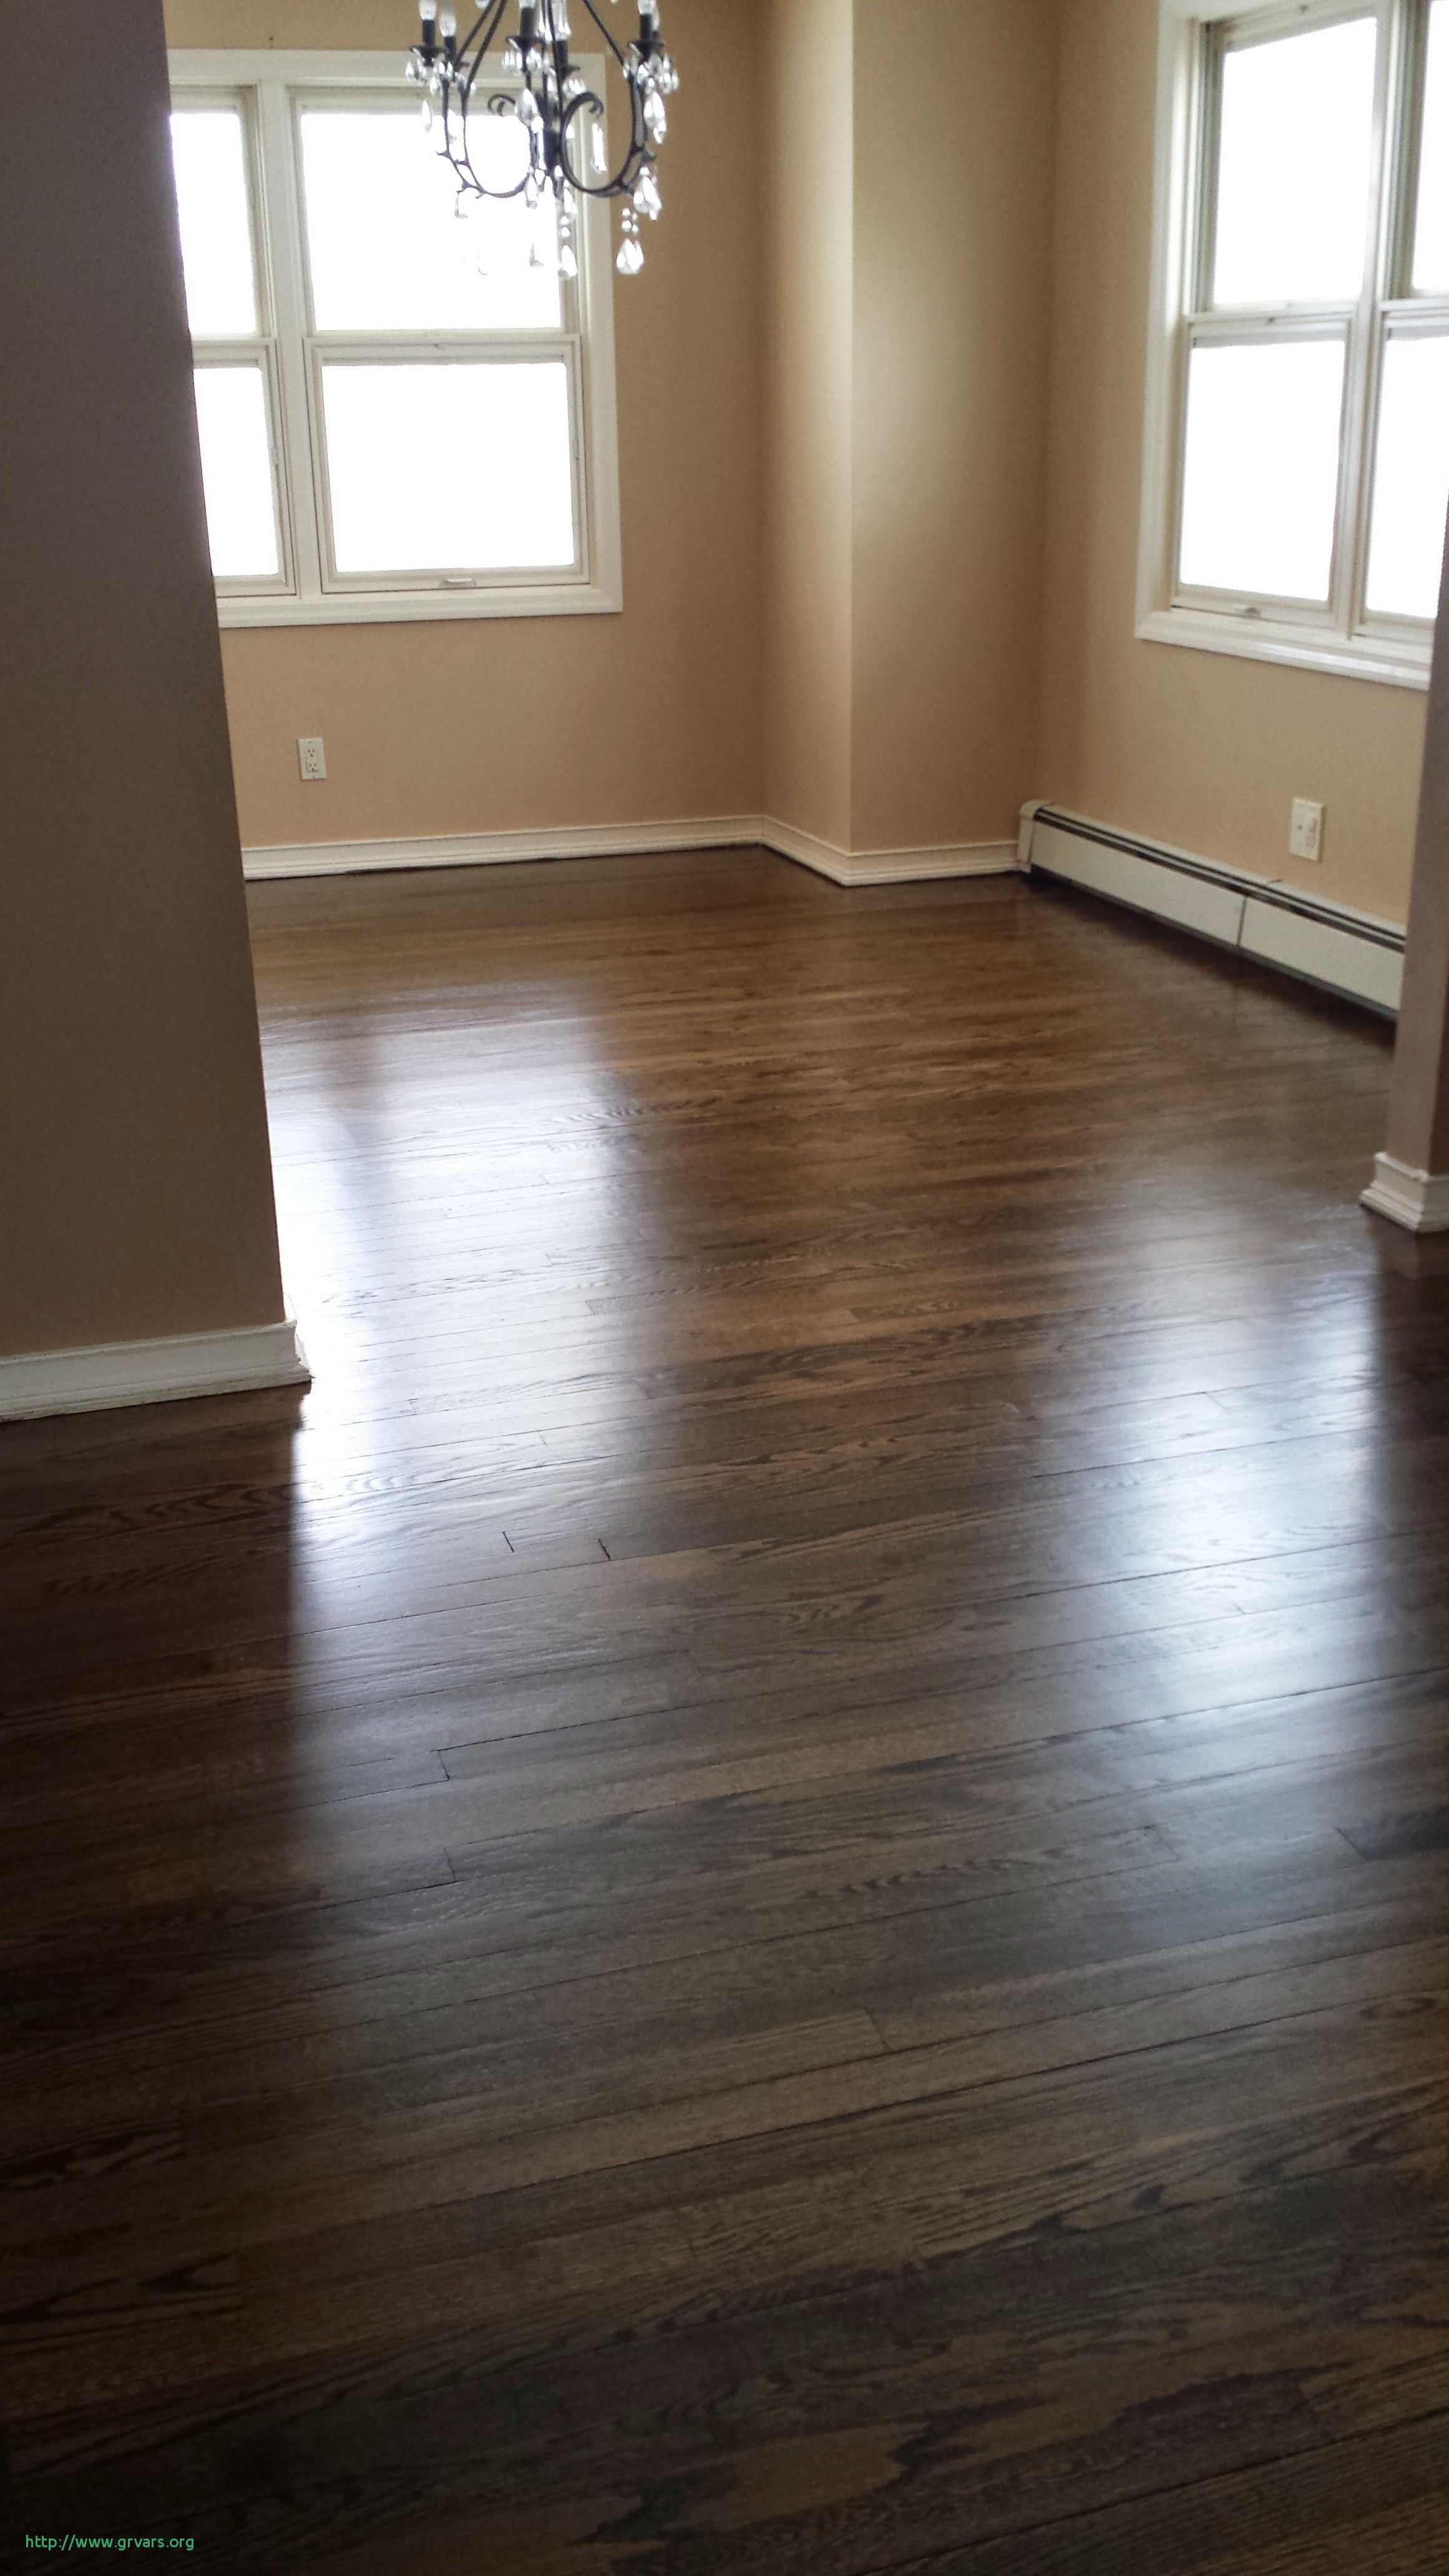 what is cost to refinish hardwood floors of cost of restoring hardwood floors nouveau amusing refinishingod for cost of restoring hardwood floors nouveau amusing refinishingod floors diy network refinish parquet without